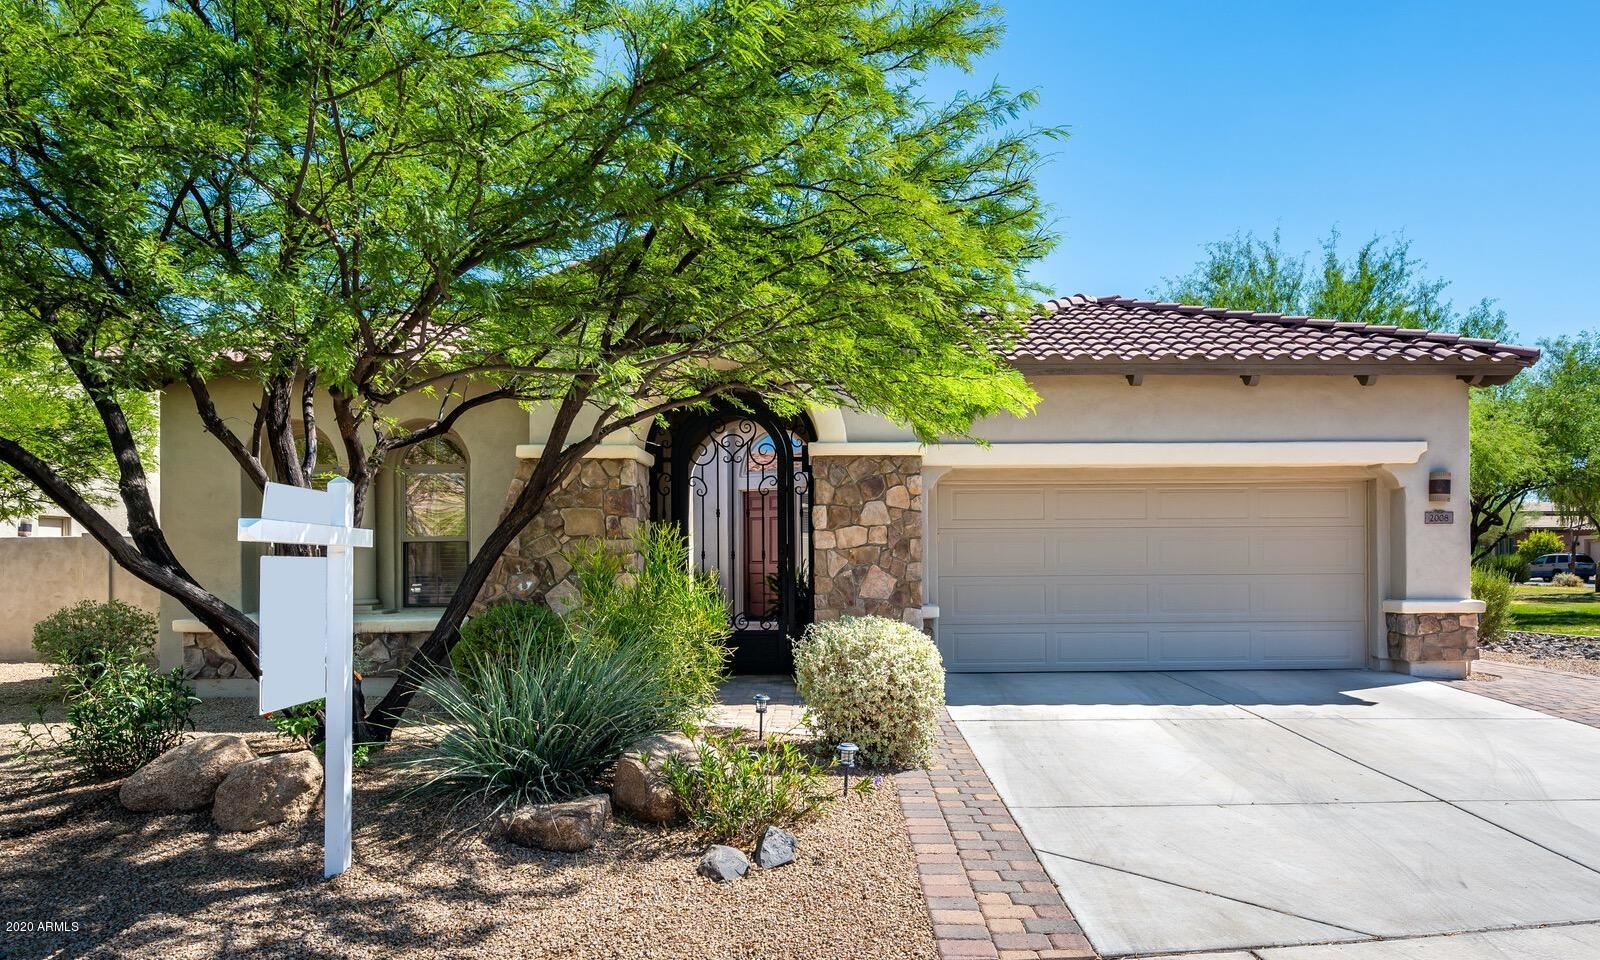 2008 W GLORIA Lane, Phoenix, AZ 85085 - MLS#: 6098939